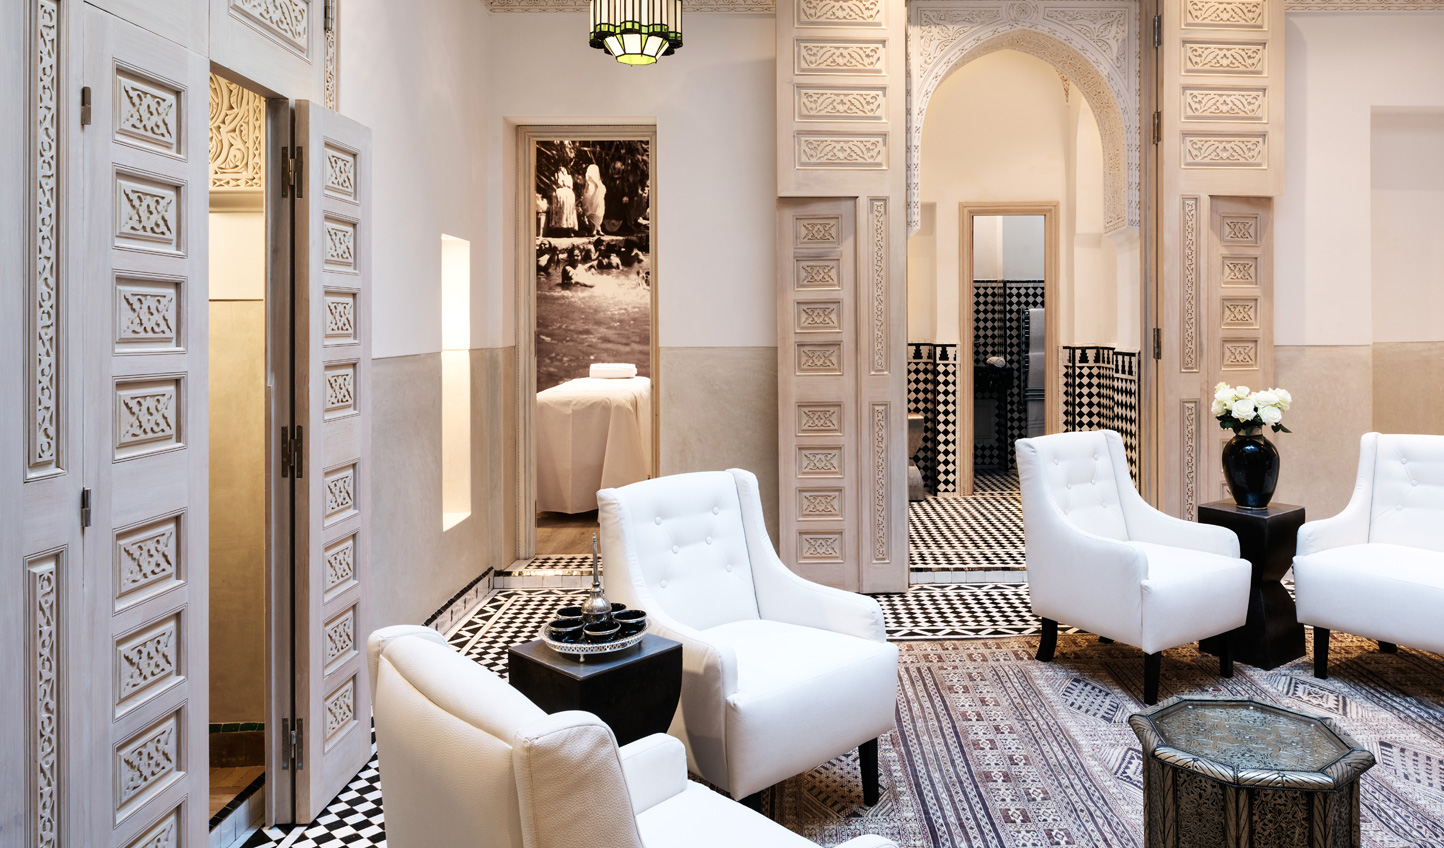 Unwind with a trip to the spa and a traditional hammam